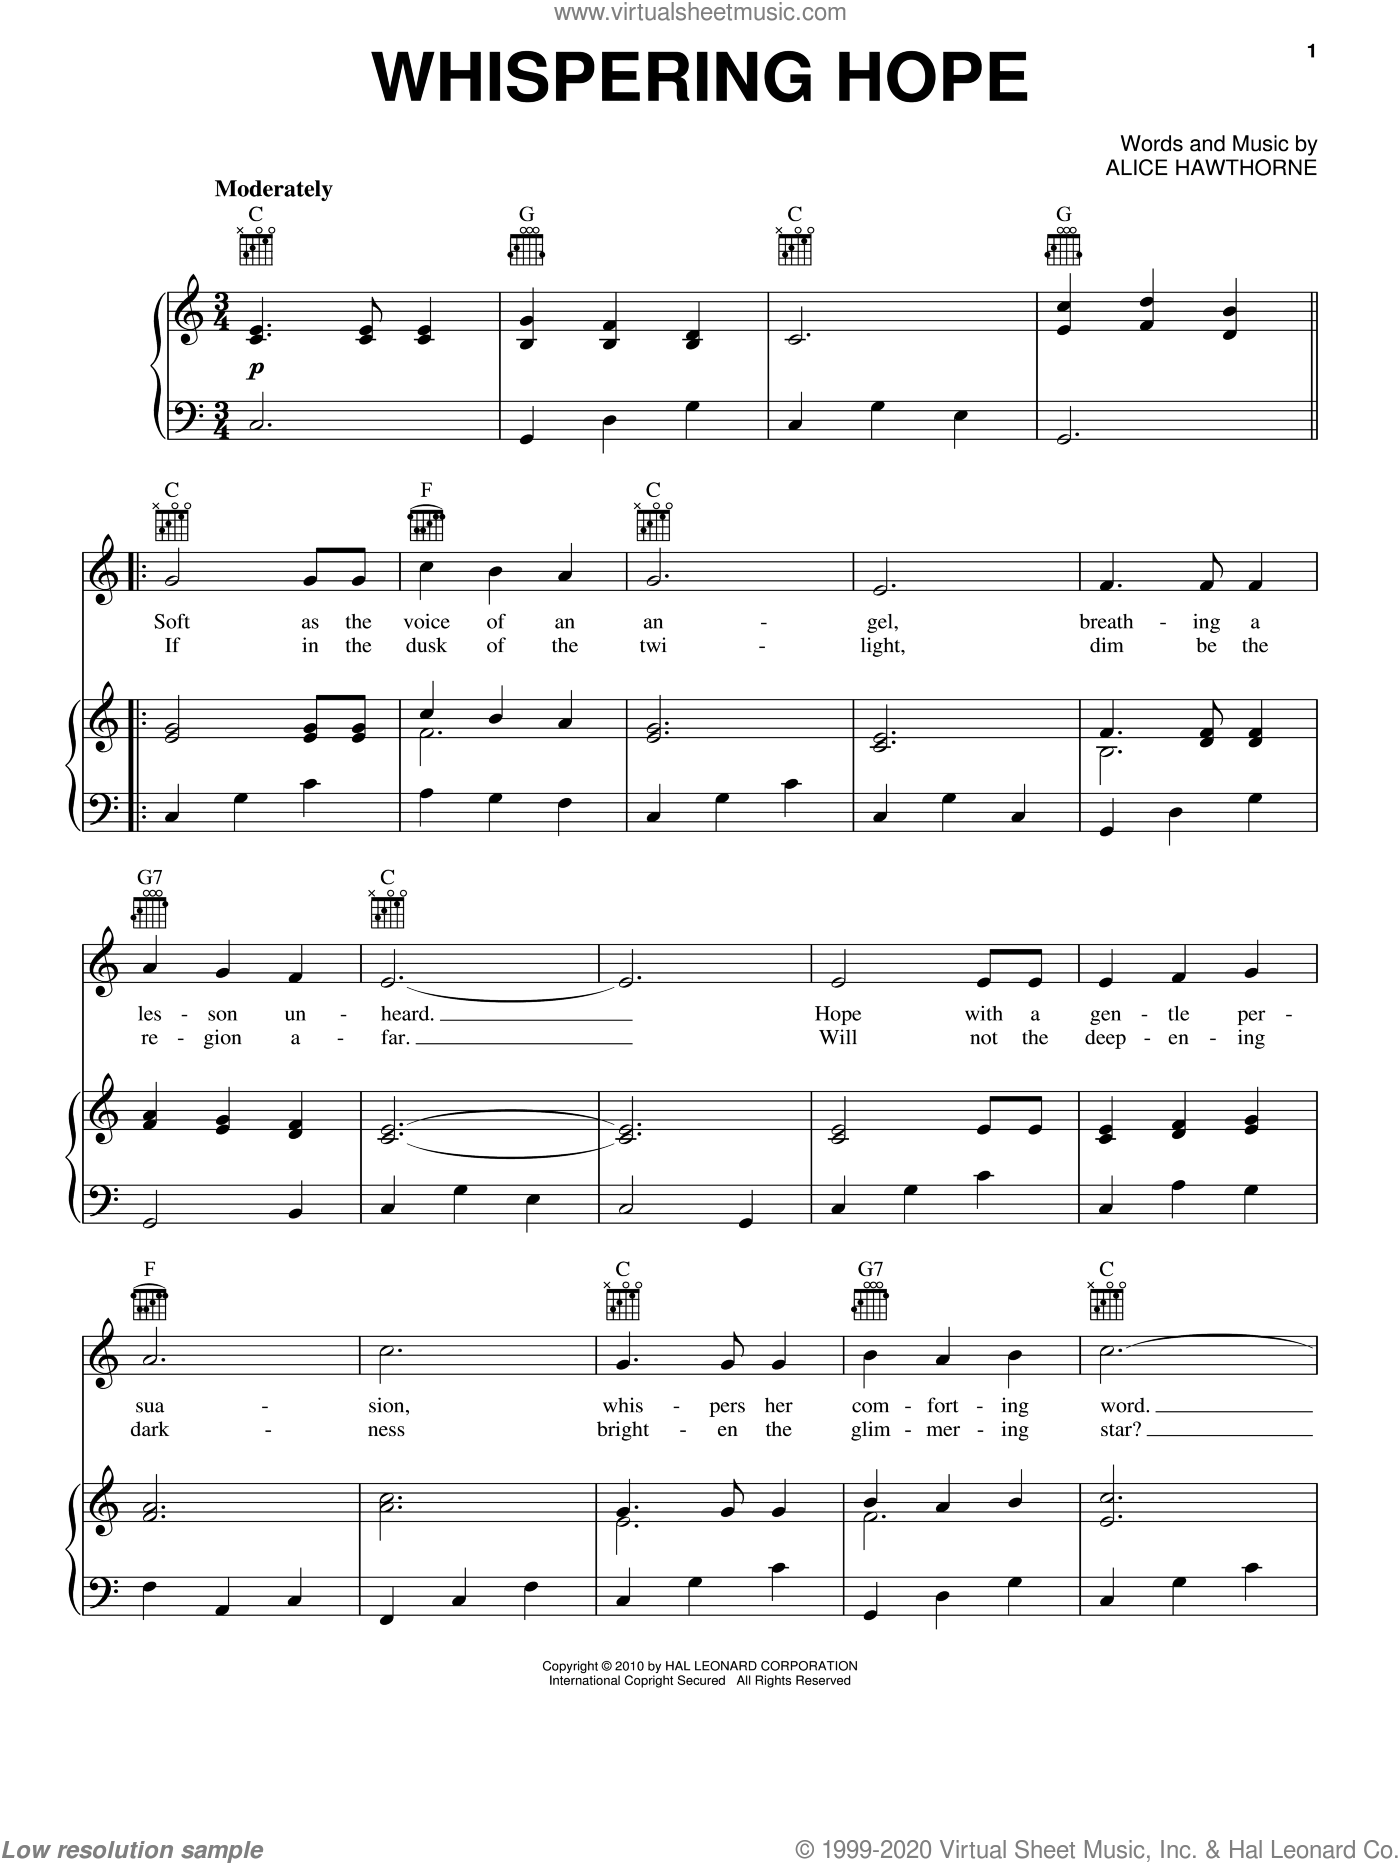 Hawthorne - Whispering Hope sheet music for voice, piano or guitar